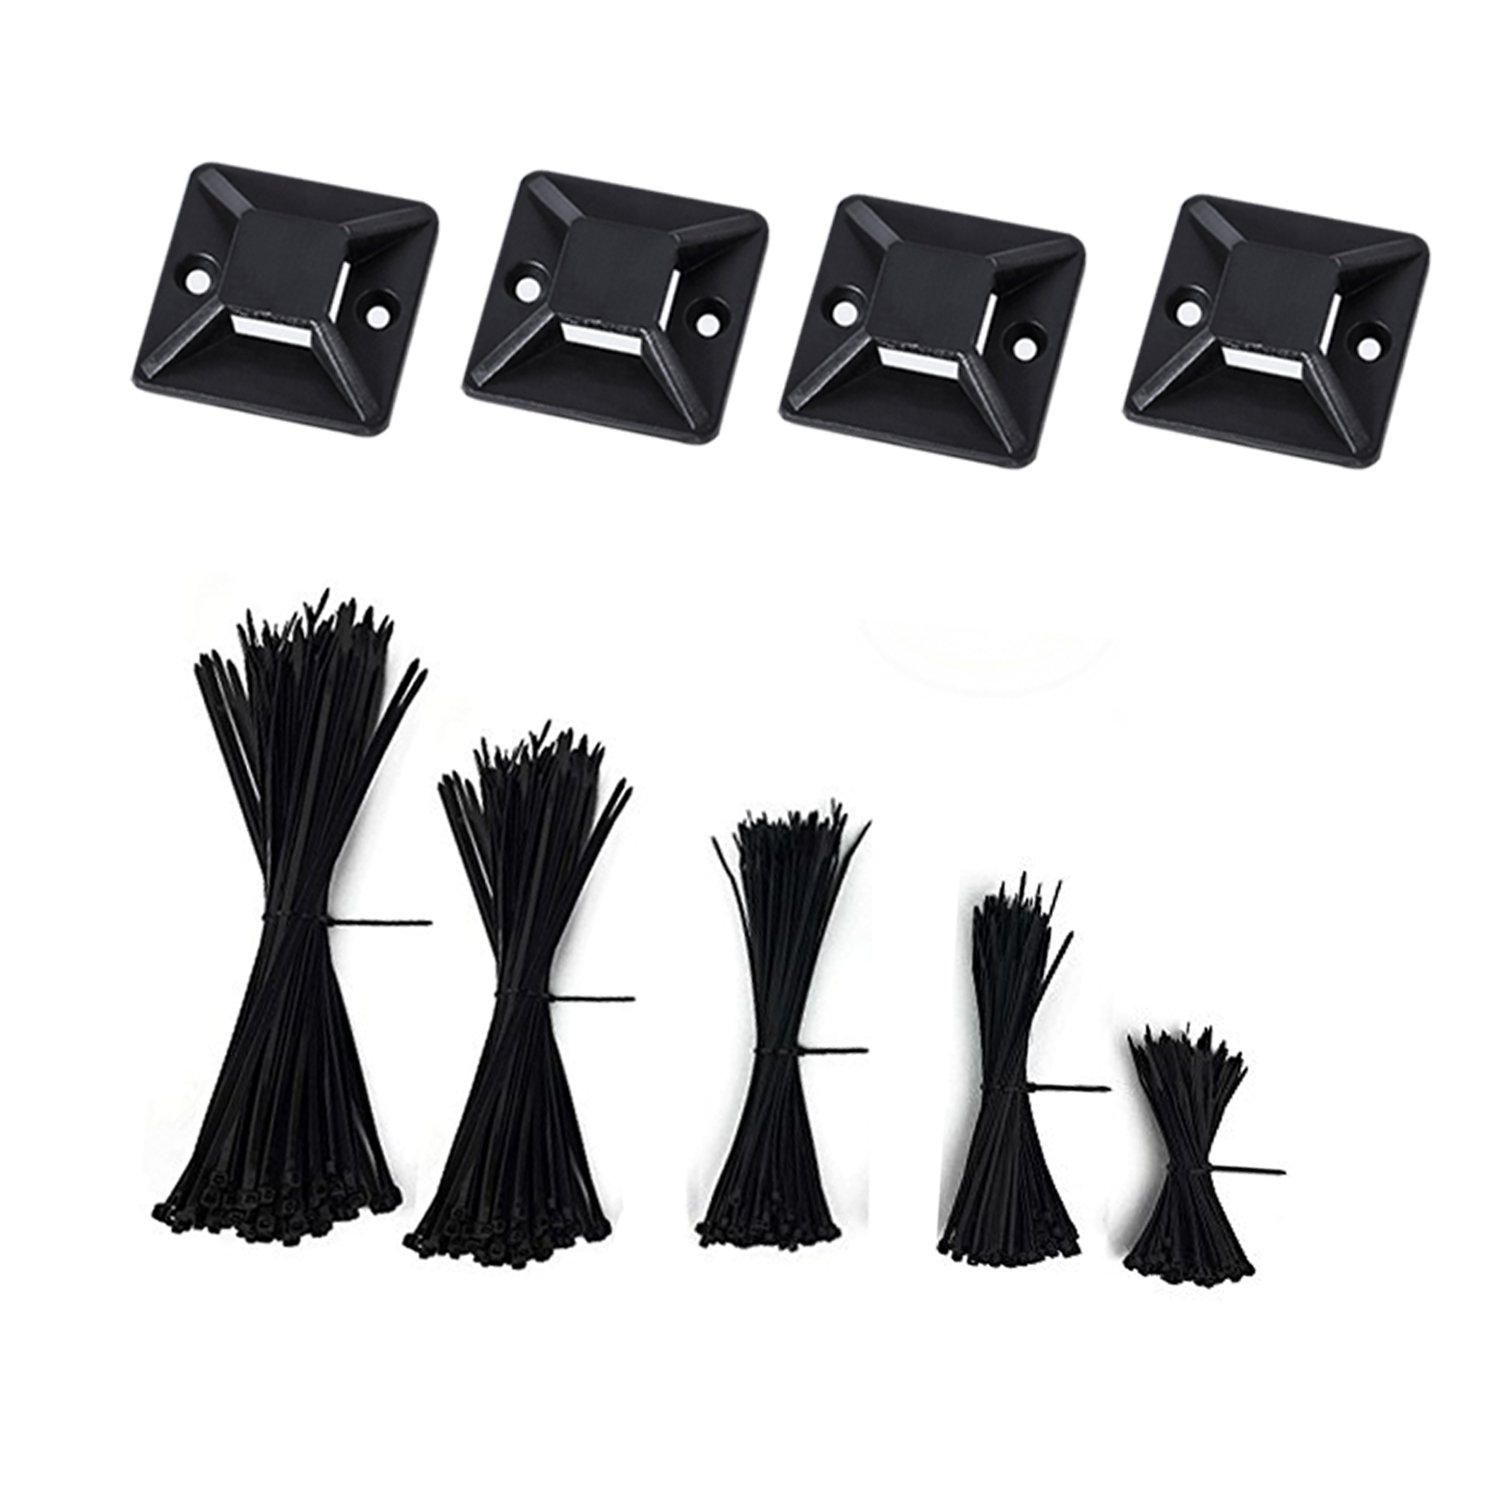 Nylon Cable Zip Ties - 4 6 8 10 12 Inches,500pcs with 50pcs Self Adhesive Cable Zip Tie Mounts for Home Ofiice Workshop by LanGui (Image #7)